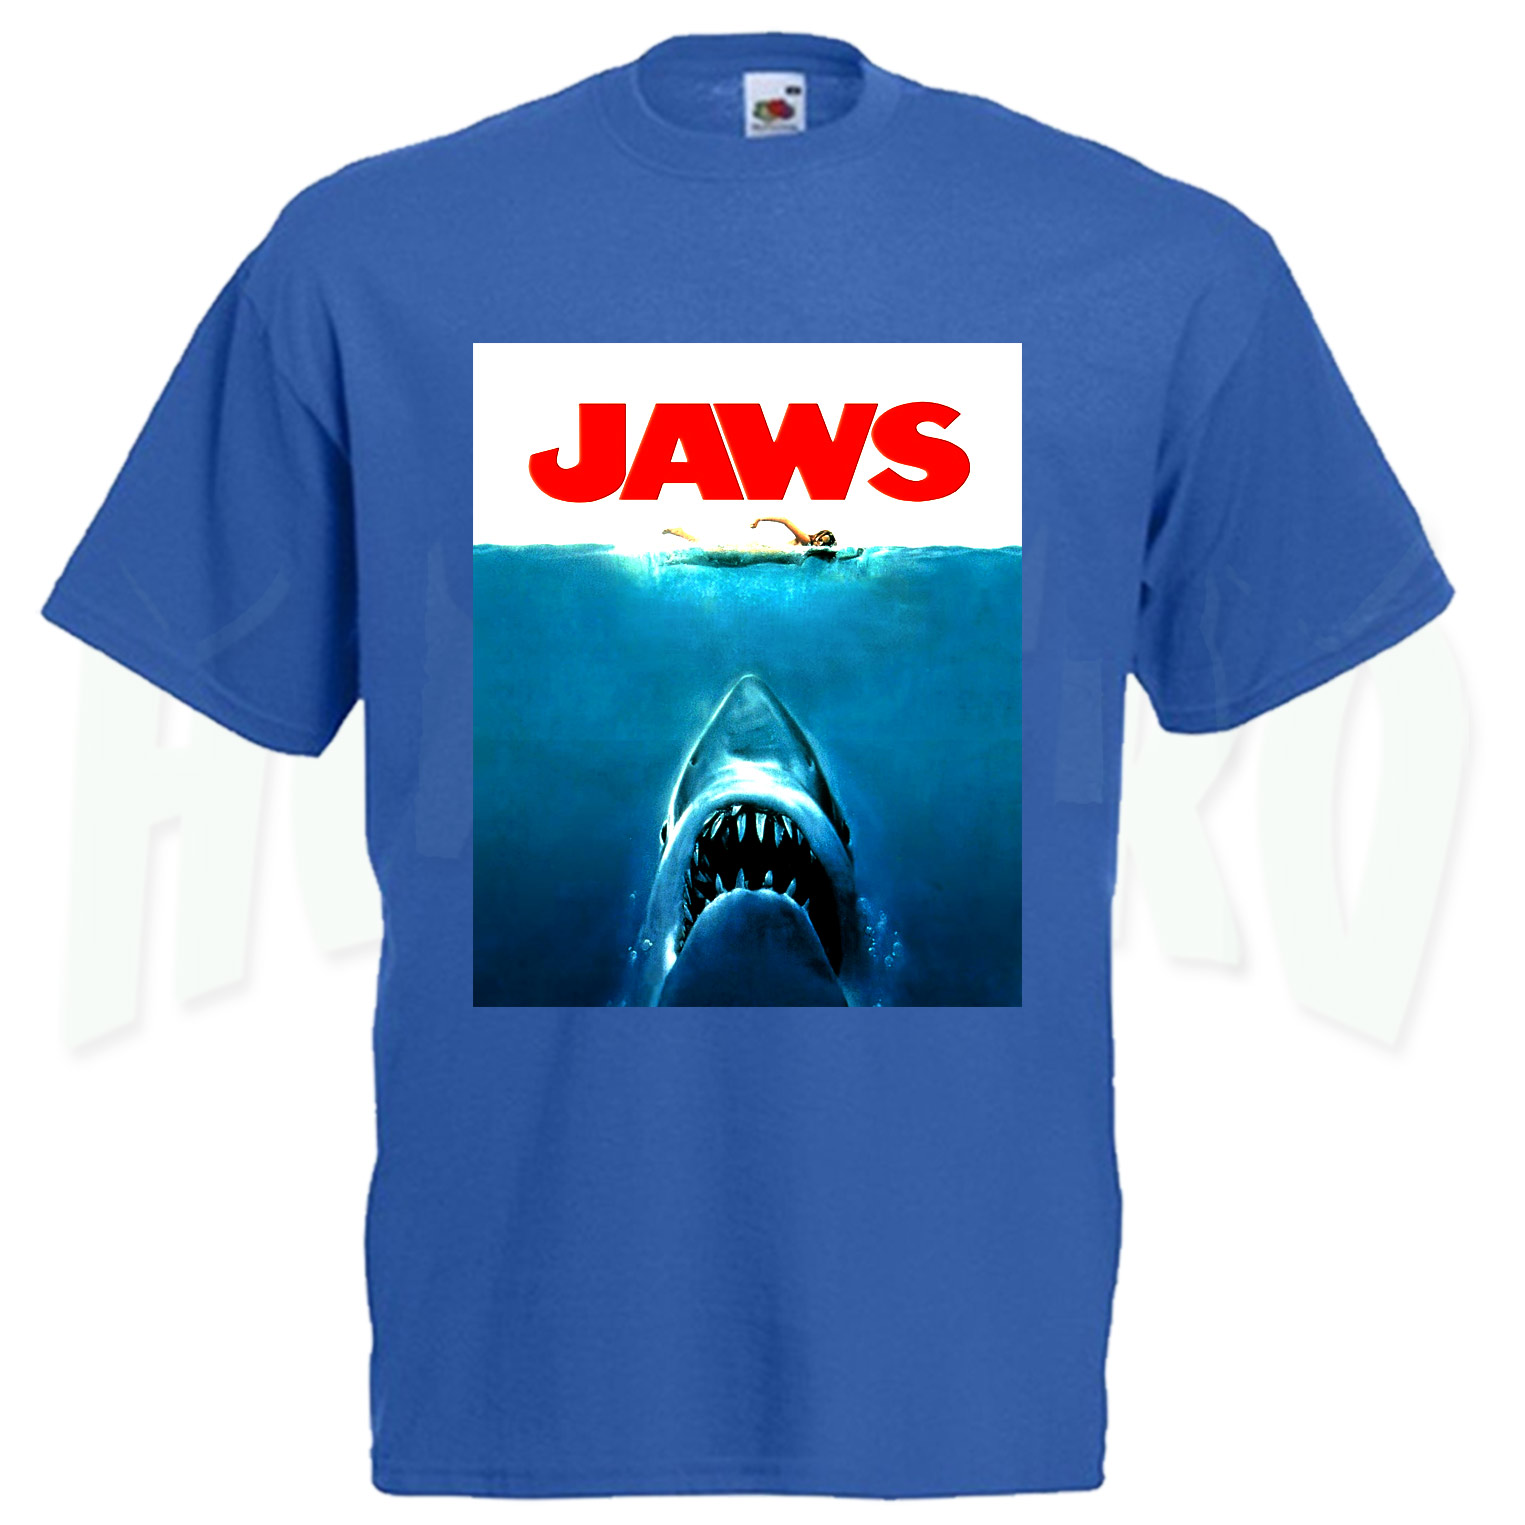 0fbc0f99 Cheap Jaws Shark Classic Movie T Shirt By HotVero